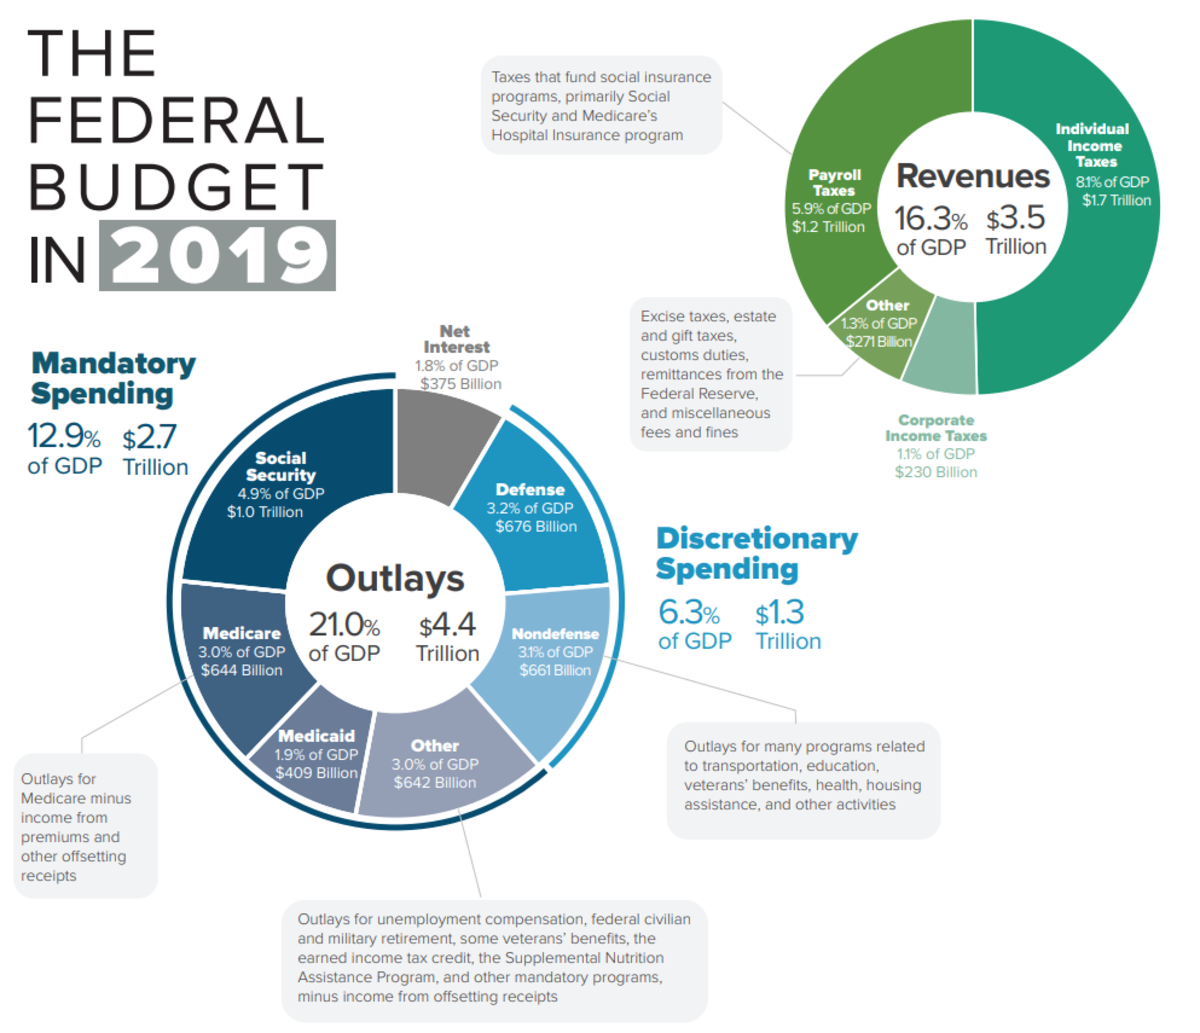 2019_Federal_Budget_Infographic